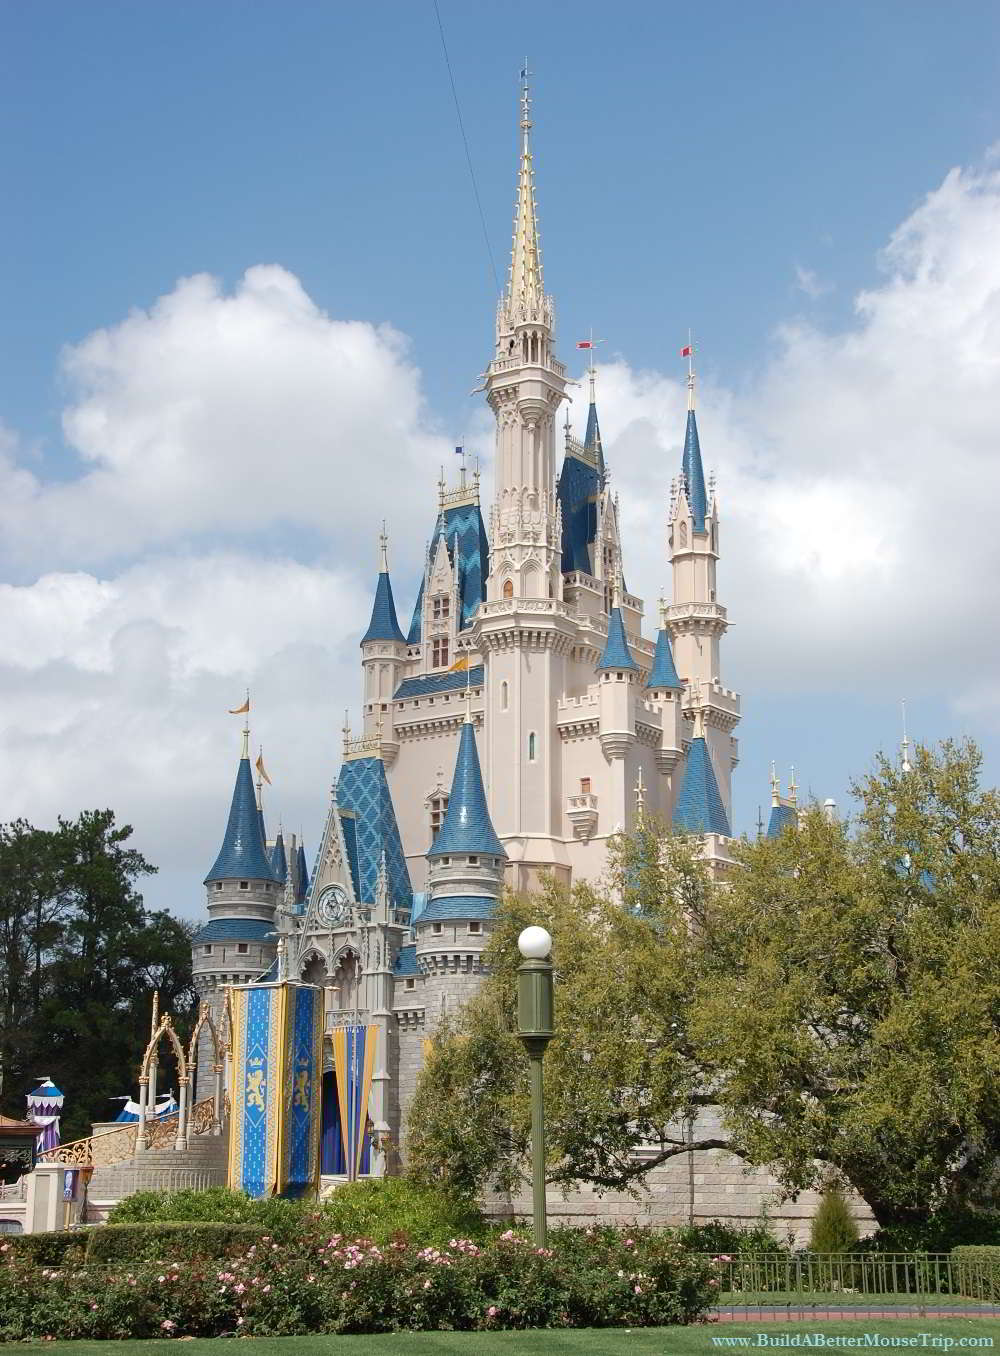 Cinderella's Castle in the Magic Kingdom at Walt Disney World Resort.